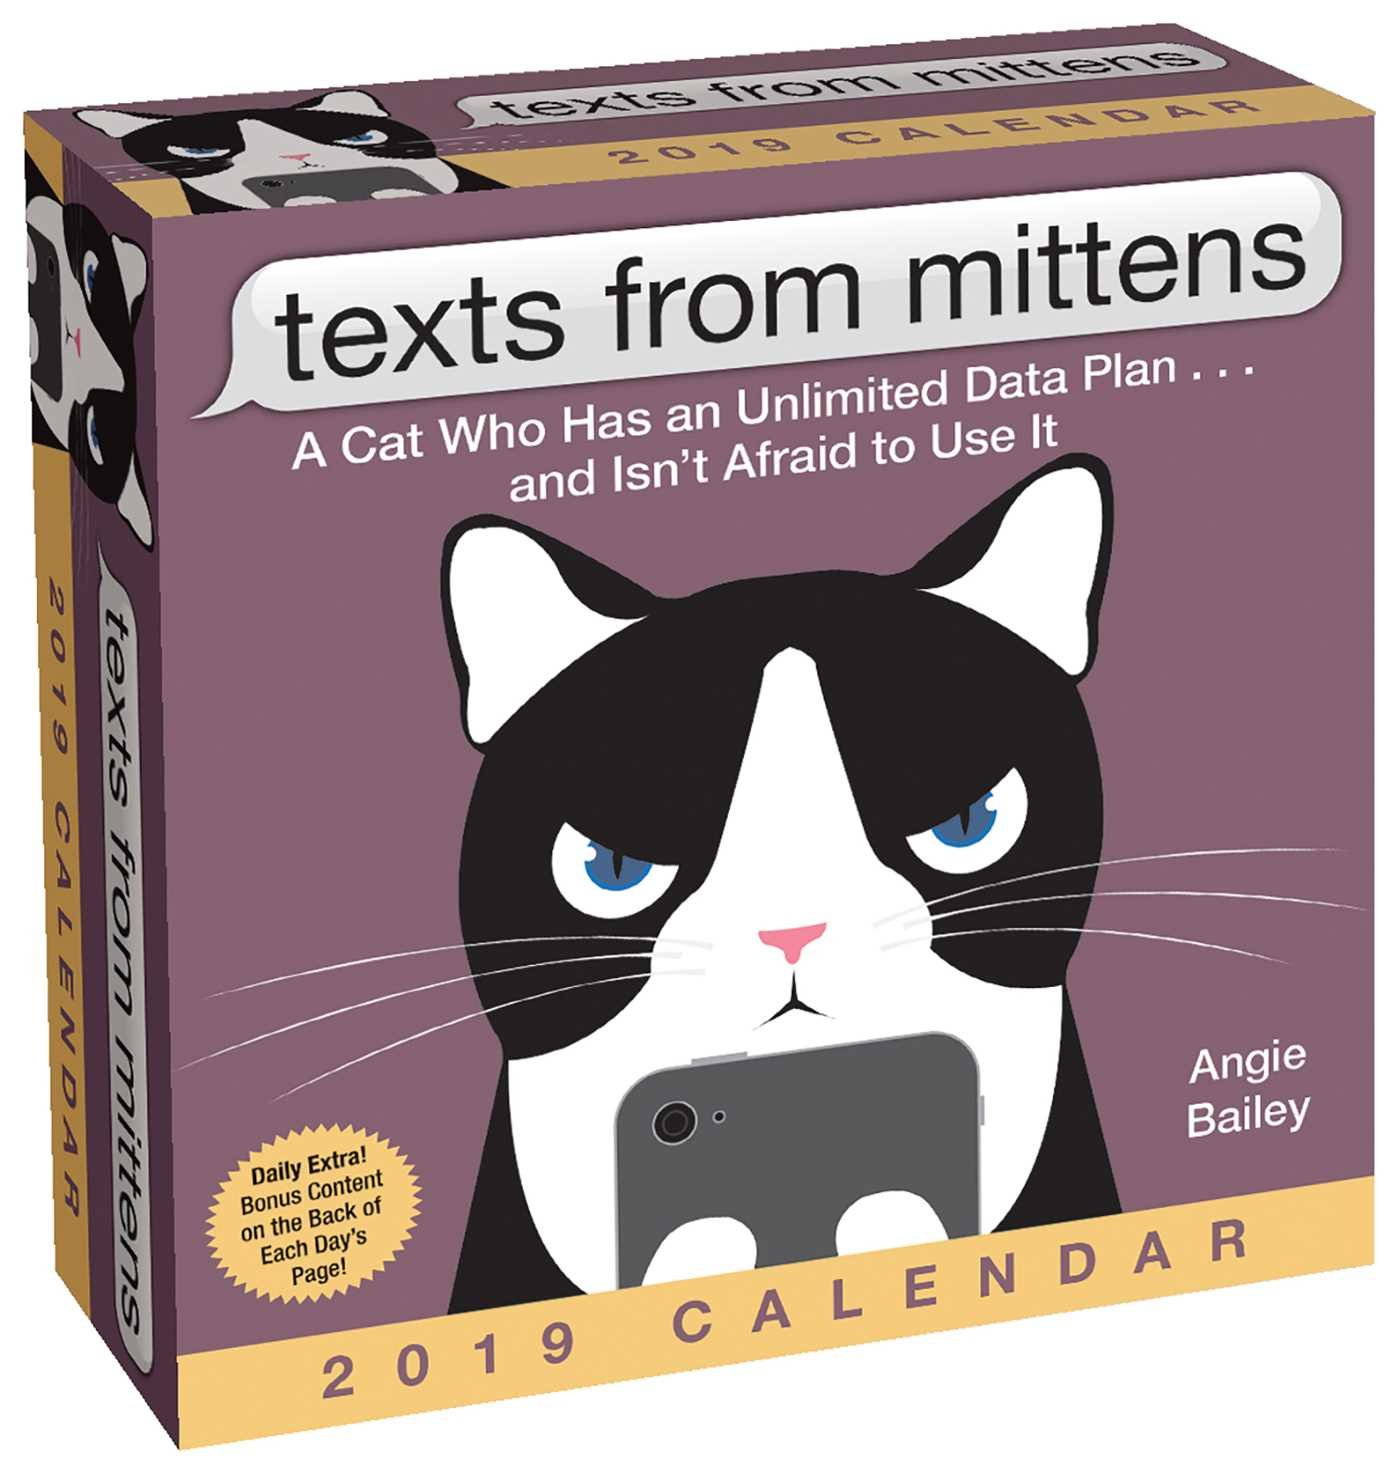 Beau Texts From Mittens The Cat 2019 Day To Day Calendar: Angie Bailey:  0050837418905: Amazon.com: Books